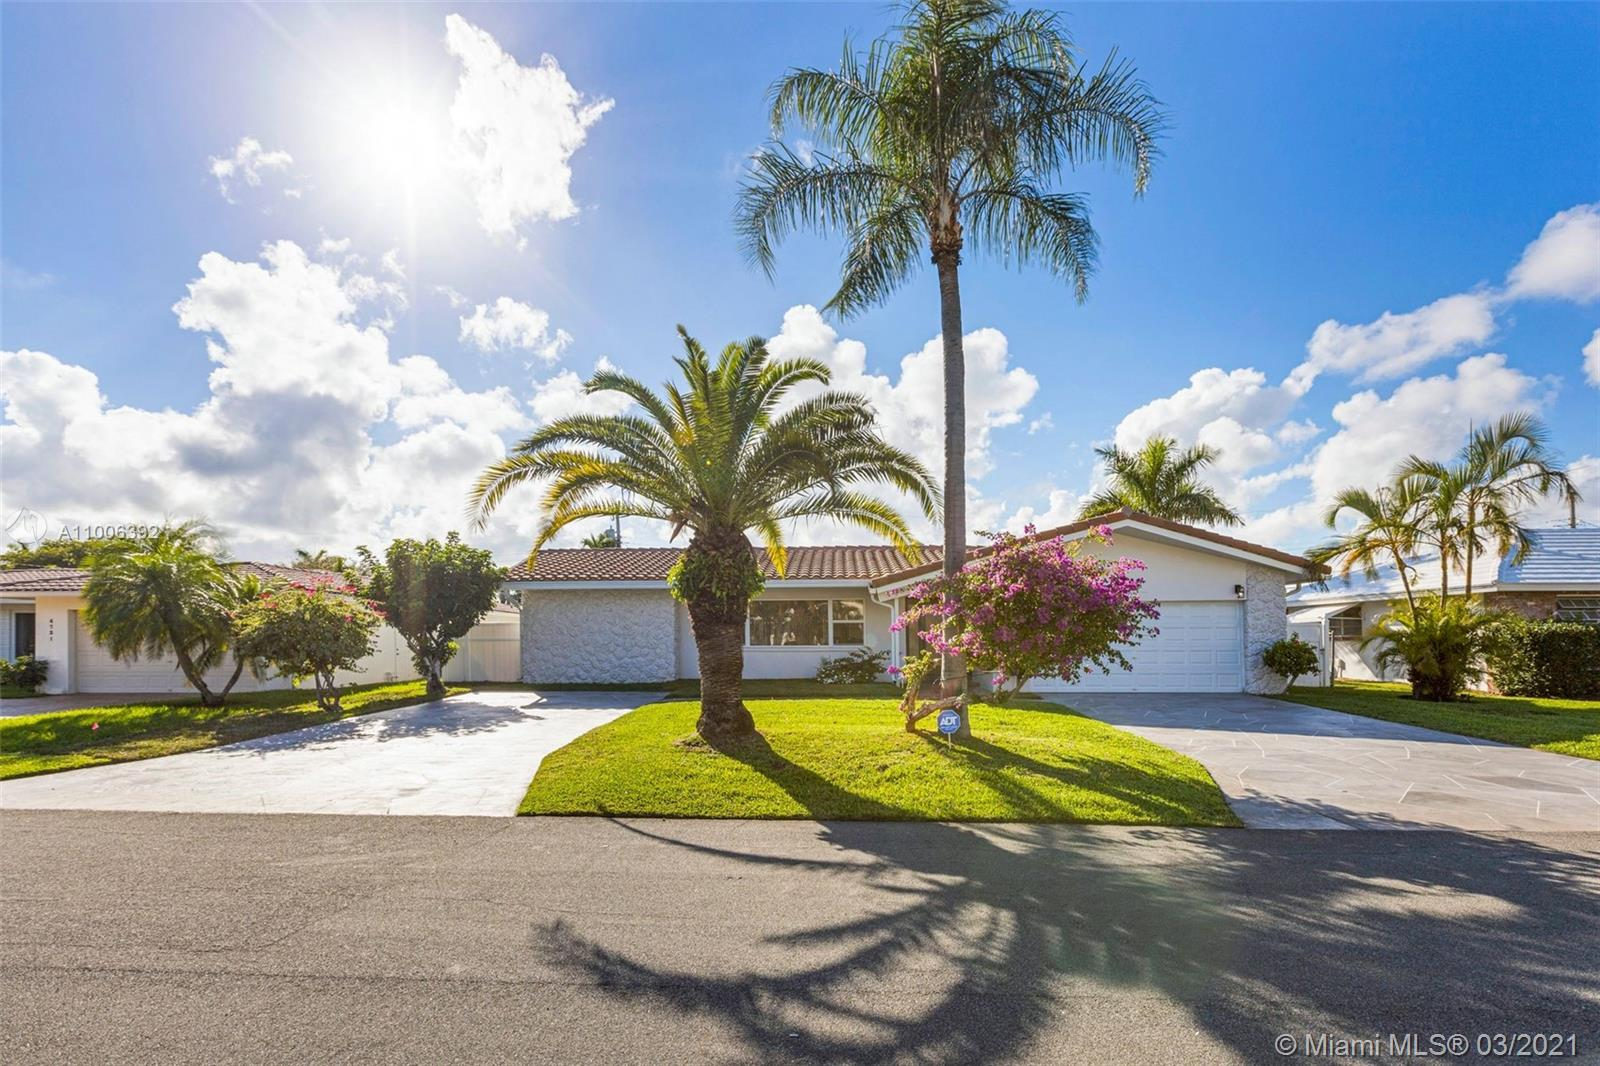 AMAZING 3/3 SINGLE HOME, remodeled and tastefully furnished. Located in the exclusive Coral Ridge Country Club Estates. Walking distance to the beach and surrounded by restaurants and shops. This home has a master bedroom with a king-size bed and bath with tub and separate shower. The second bedroom features 2 twin beds with a trundle and a bathroom with a shower, the third bedroom has a queen bed and a bathroom with shower that also serves as the caban bathroom and guest bathroom. Home features a family room, nice kitchen with granite countertops, Stainless Steel Appl., and pantry table for 4, a stunning living and dining facing the pool area, Washer / Dryer, Heater Pool, and BBQ. Available from 5/1/2021. Rates subject to availability and season. Please call/txt to inquire